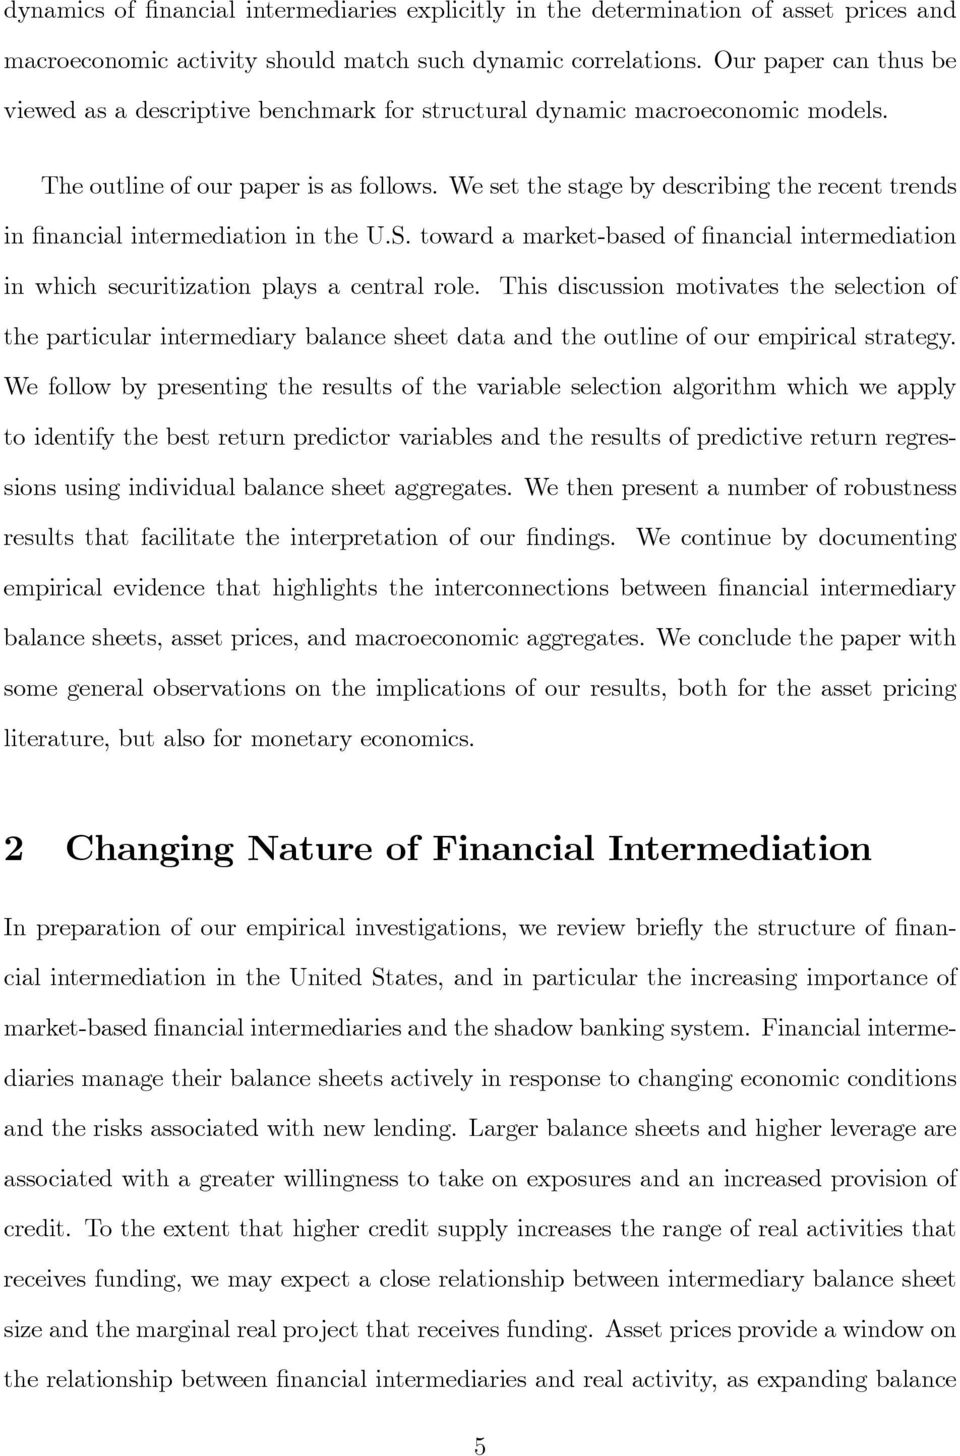 We set the stage by describing the recent trends in nancial intermediation in the U.S. toward a market-based of nancial intermediation in which securitization plays a central role.